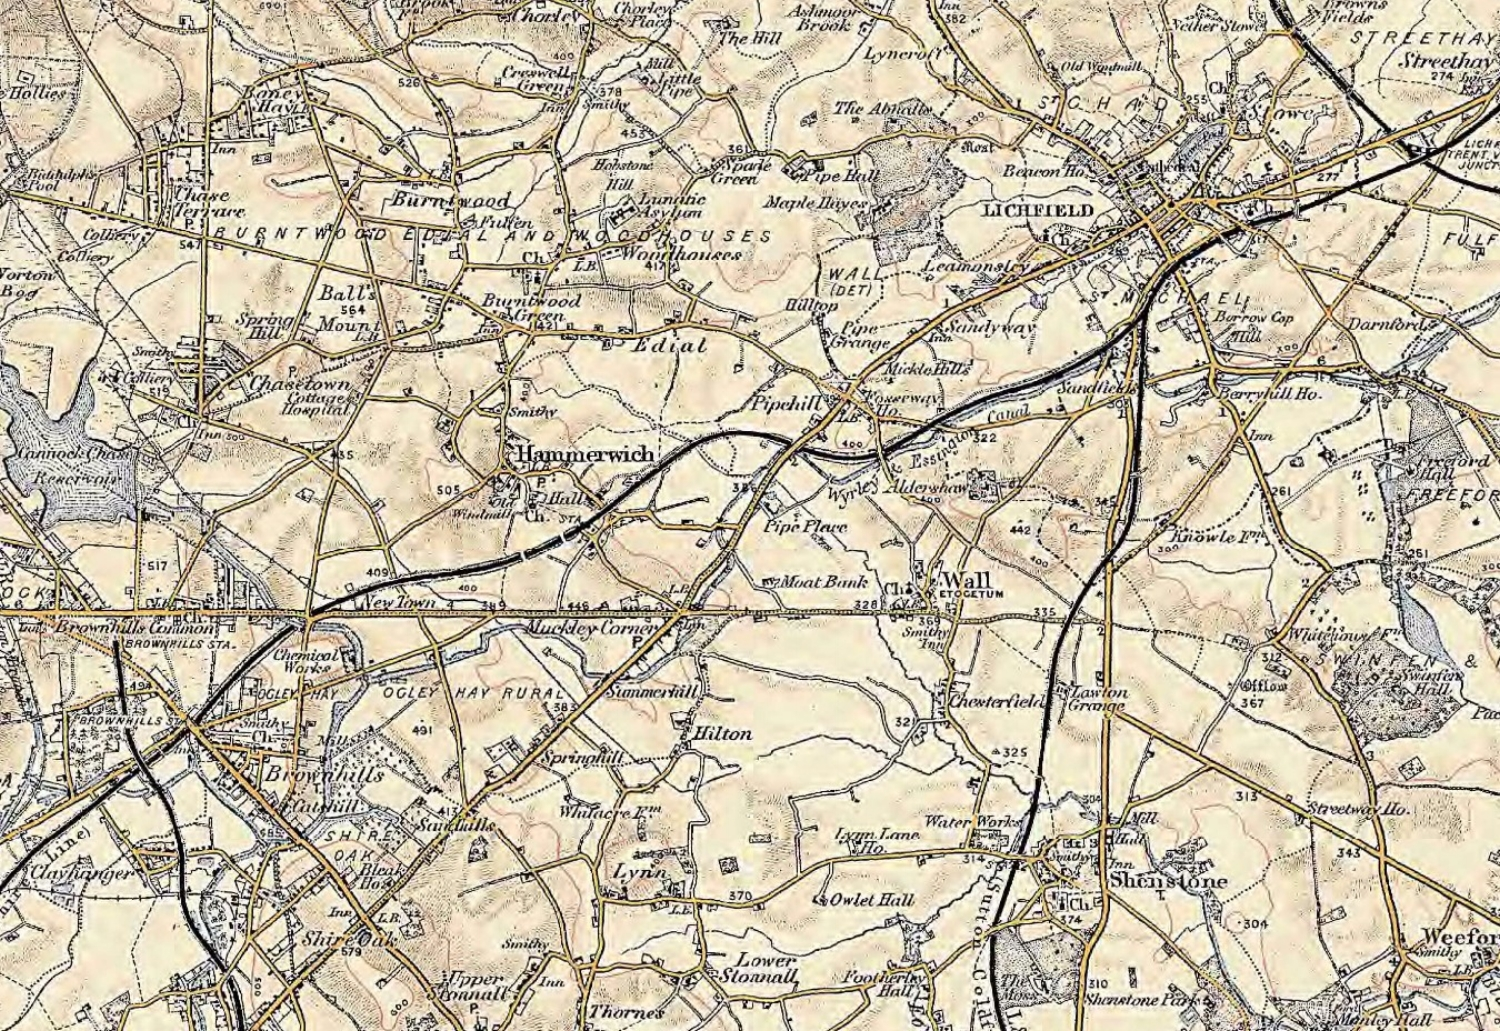 Section of UK, Revised New Series Maps, 1896 – 1904, showing the area around Wall in Staffordshire